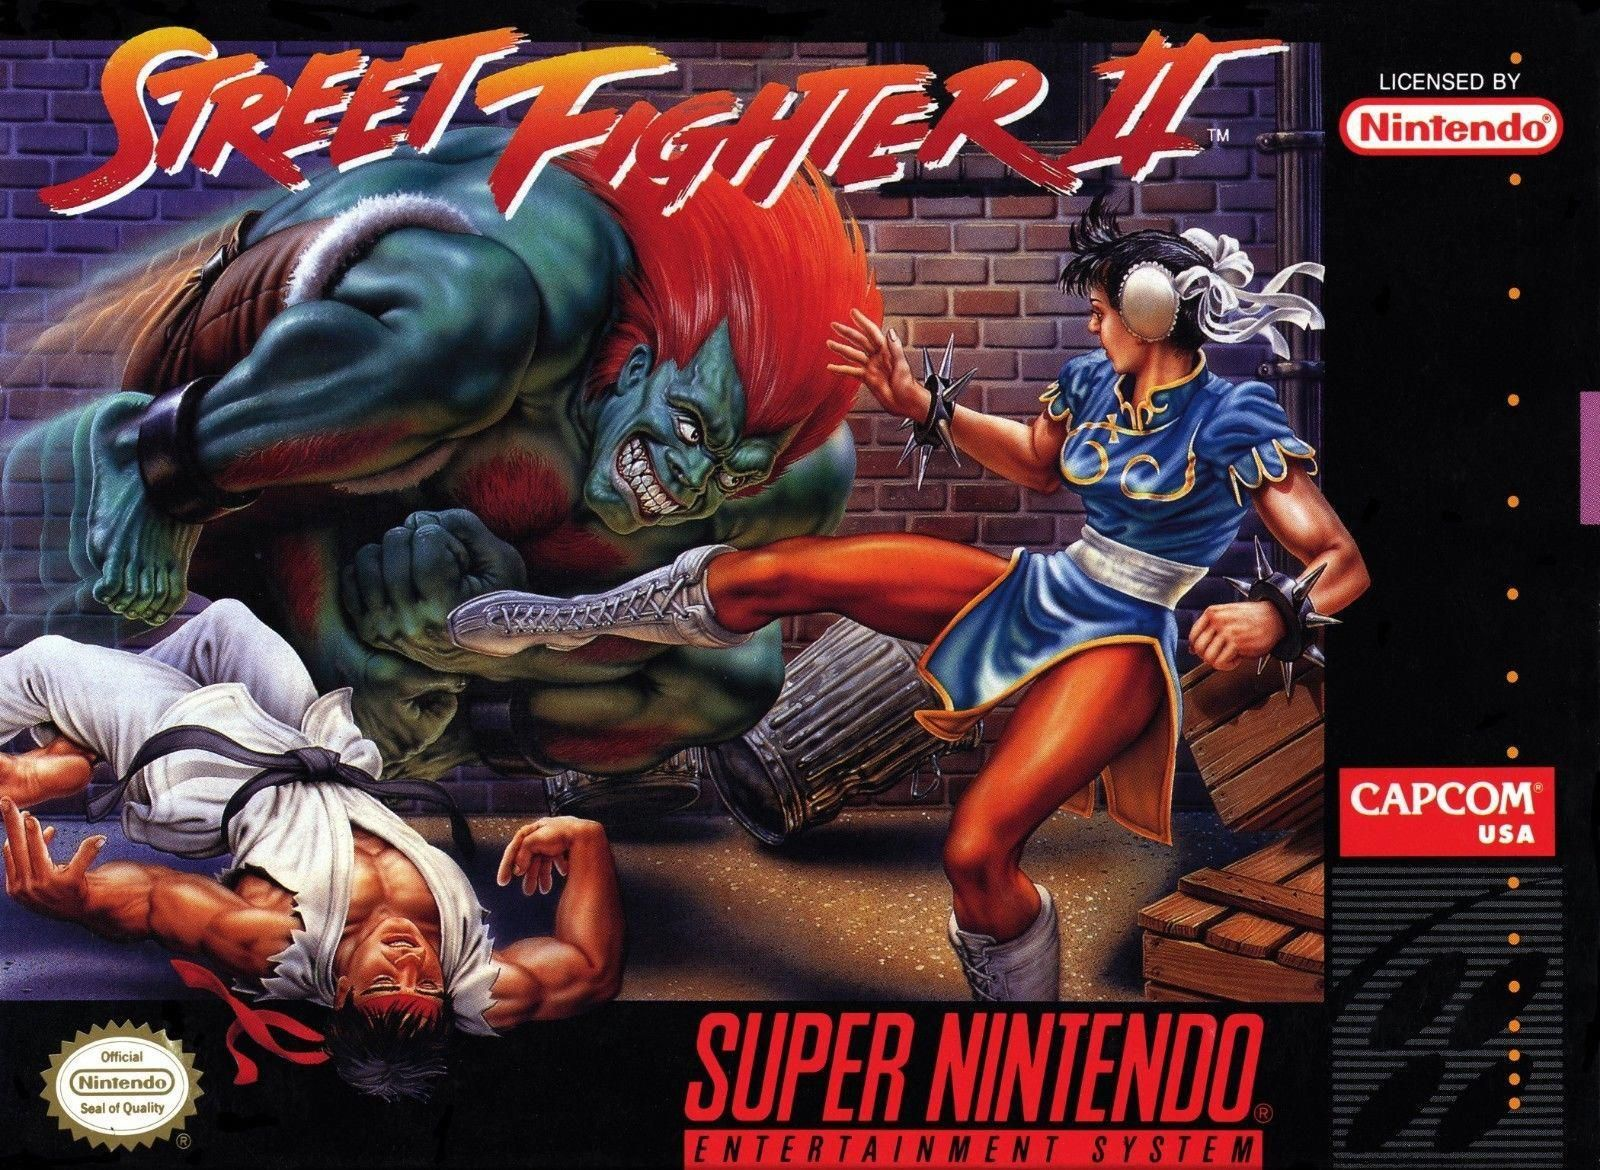 485c6843199402544efd7b8fbb8141ec 20 Things You Might Not Have Realised About The 1994 Street Fighter Movie